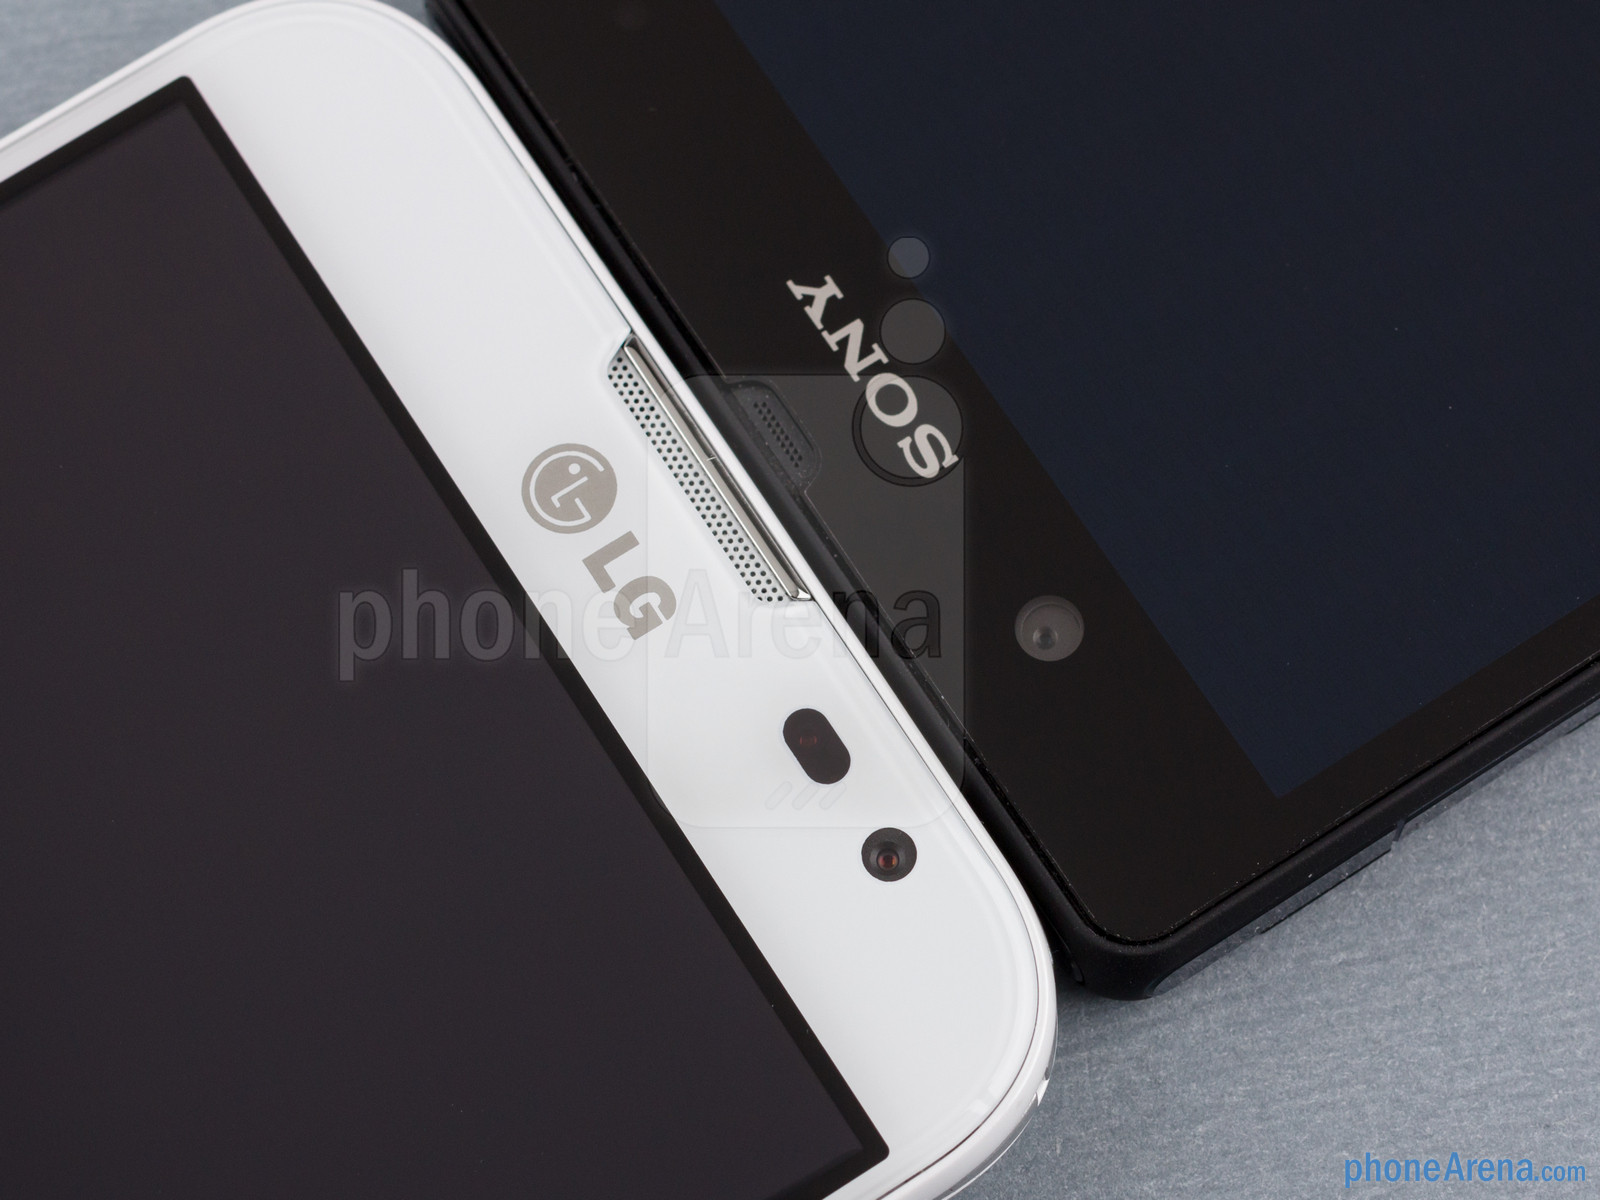 LG Optimus G Pro, Xperia Z, HTC One, Android, Mobile-news